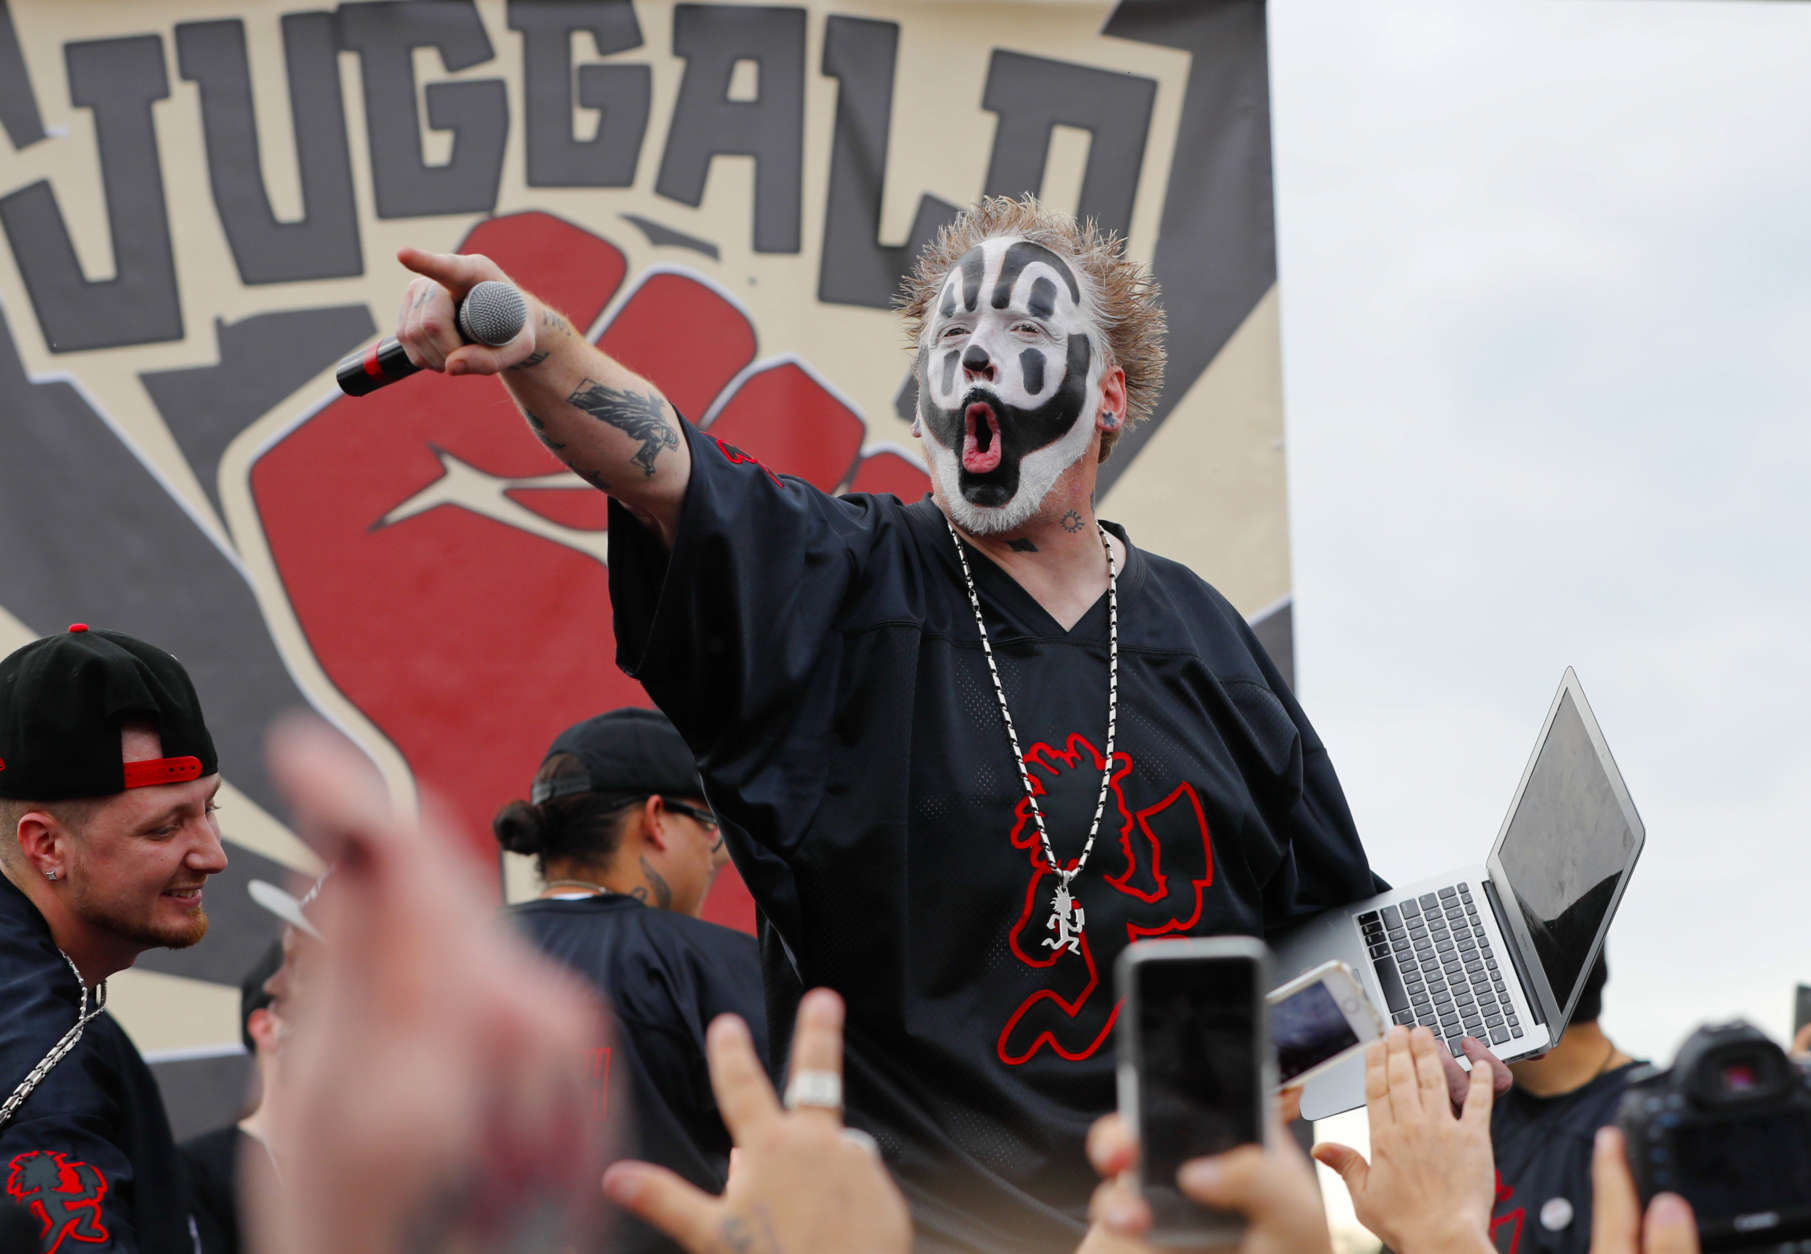 """Violent J, a member of the rap group Insane Clown Posse, yells on stage before speaking to juggalos, as supporters of the group are known, in front of the Lincoln Memorial in Washington during a rally, Saturday, Sept. 16, 2017, to protest and demand that the FBI rescind its classification of the juggalos as """"loosely organized hybrid gang."""" (AP Photo/Pablo Martinez Monsivais)"""